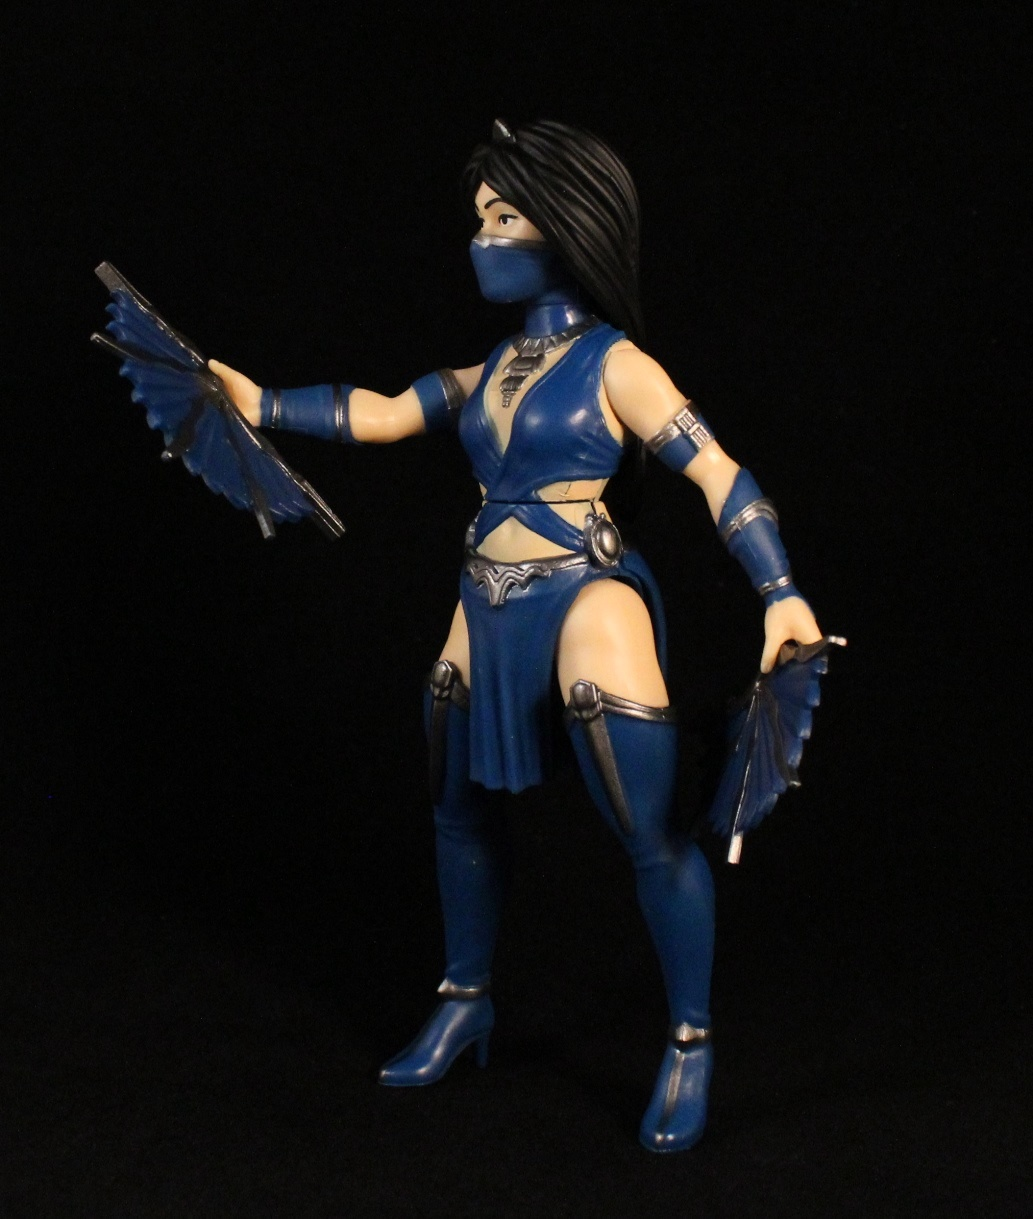 Mortal Kombat 11 Gameplay Shows Kitana and Cetrion in